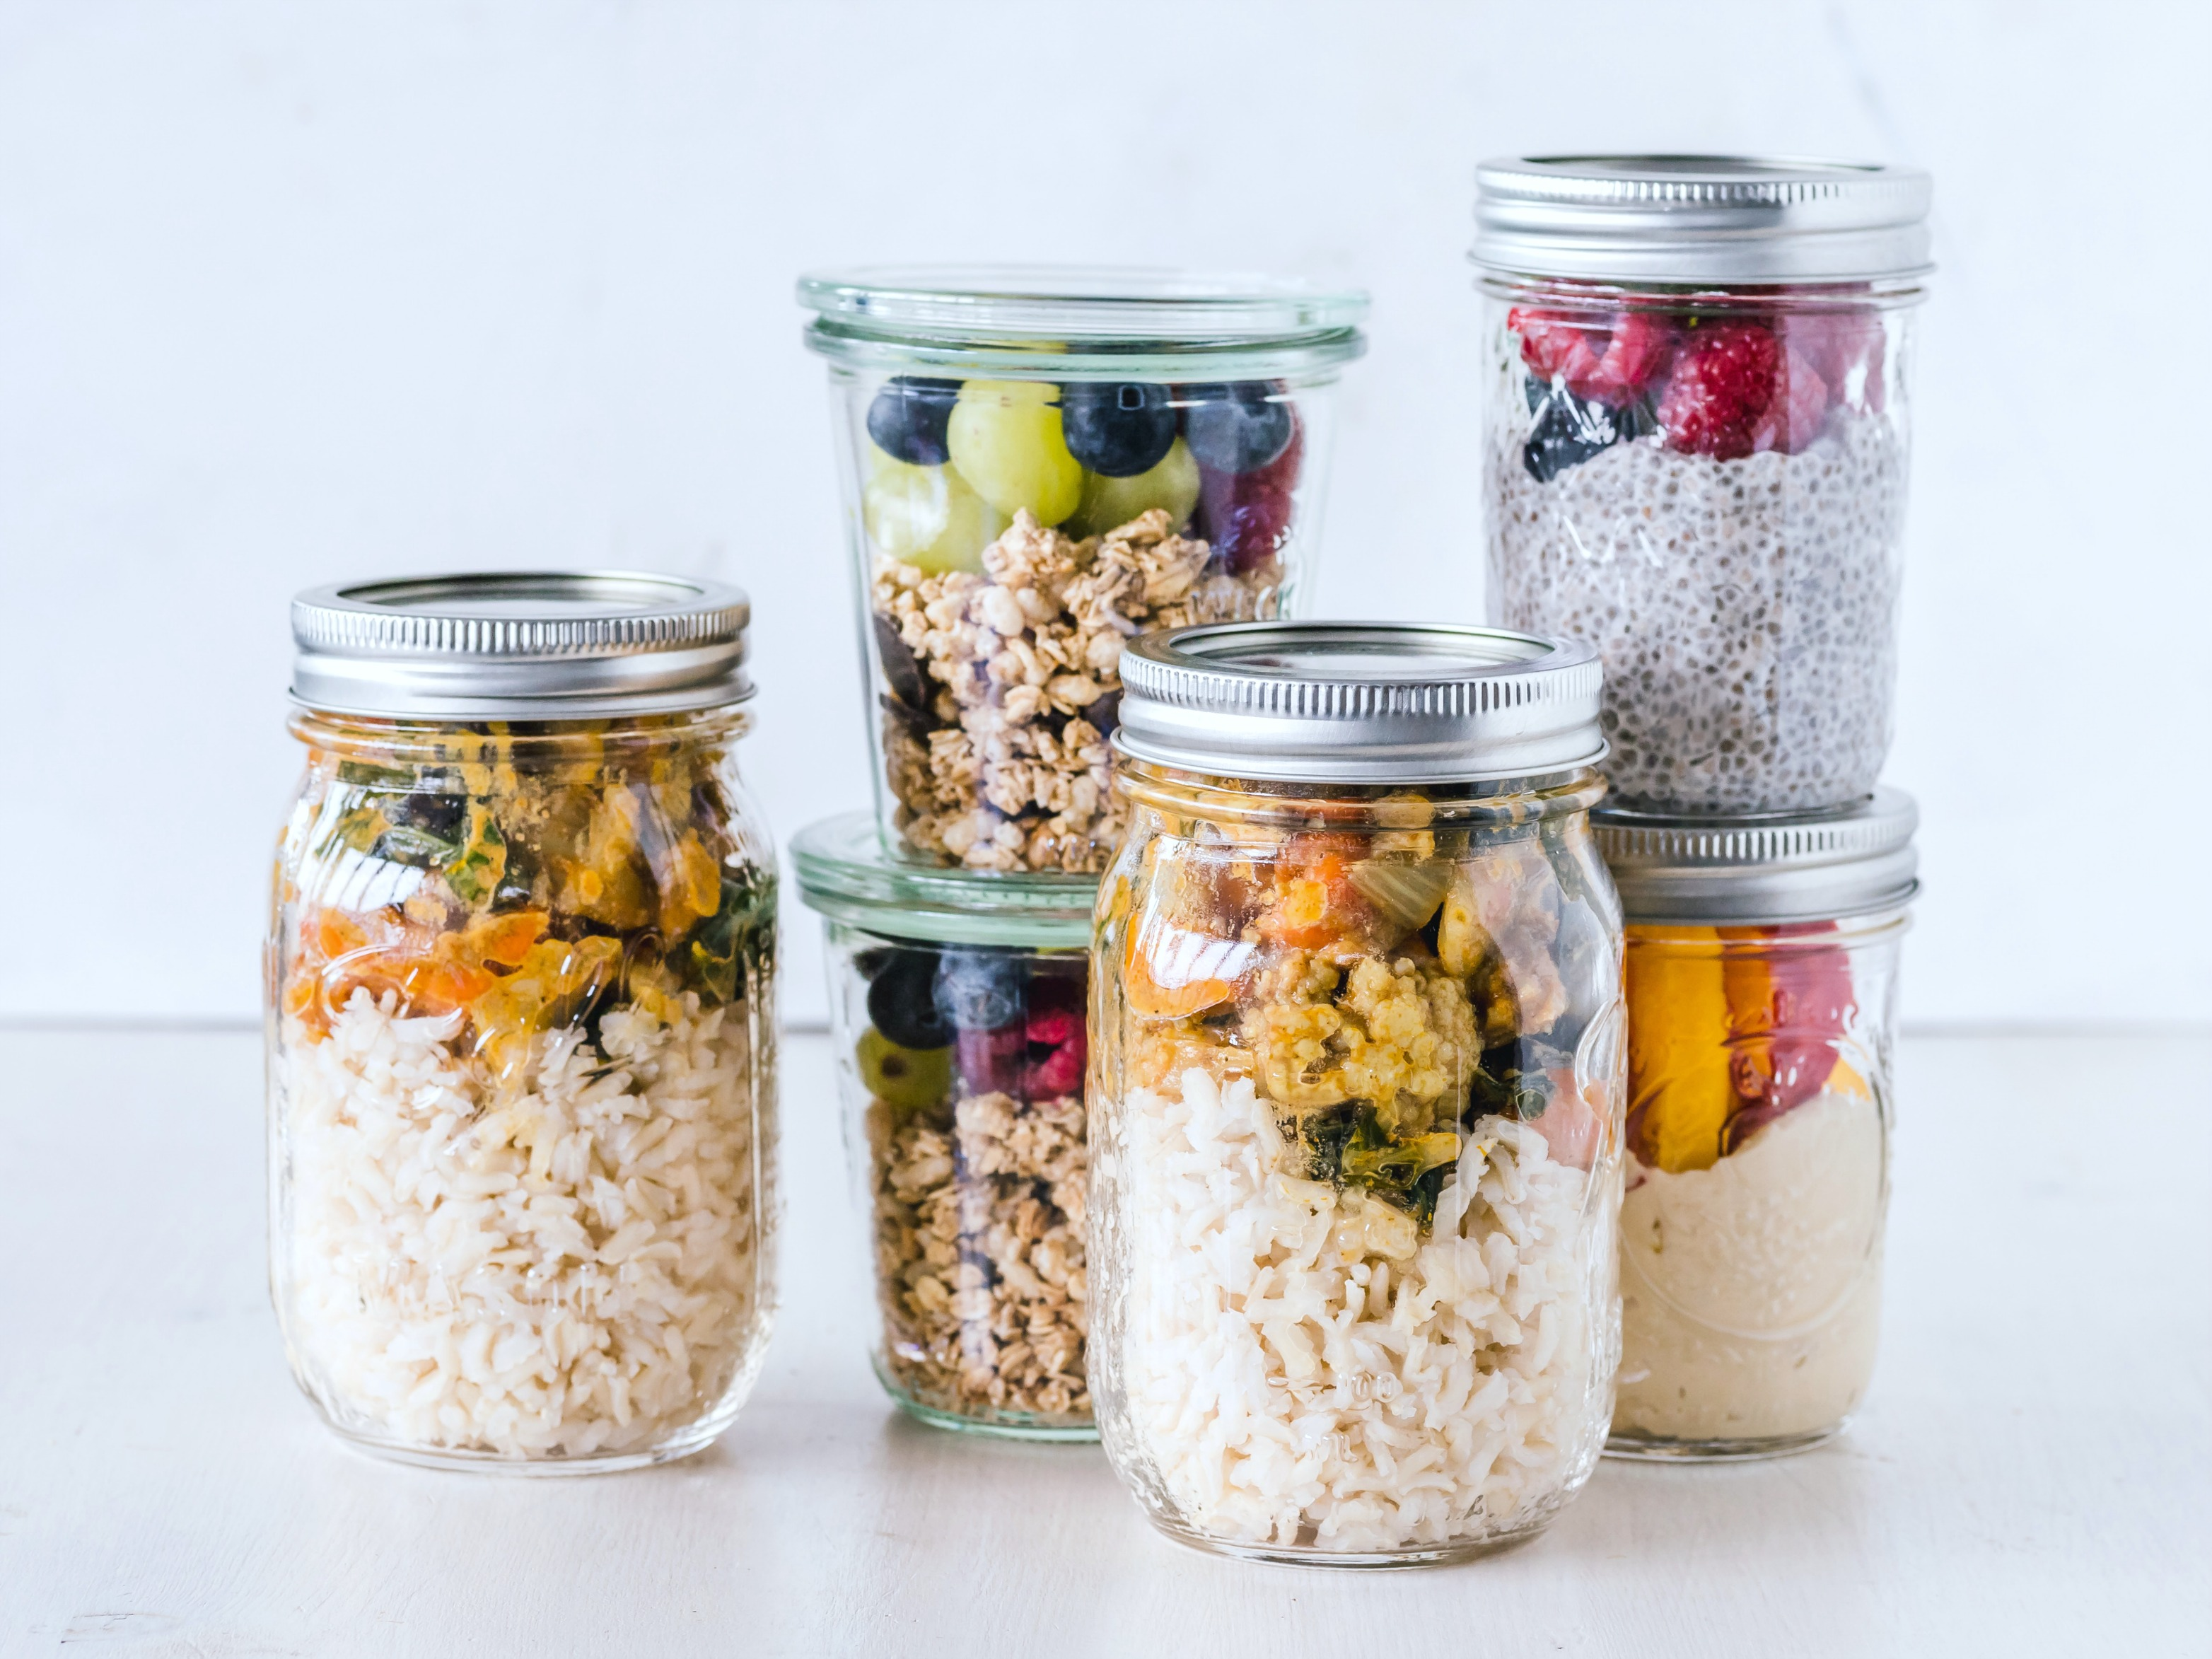 Mason jars filled with prepped food and snacks.